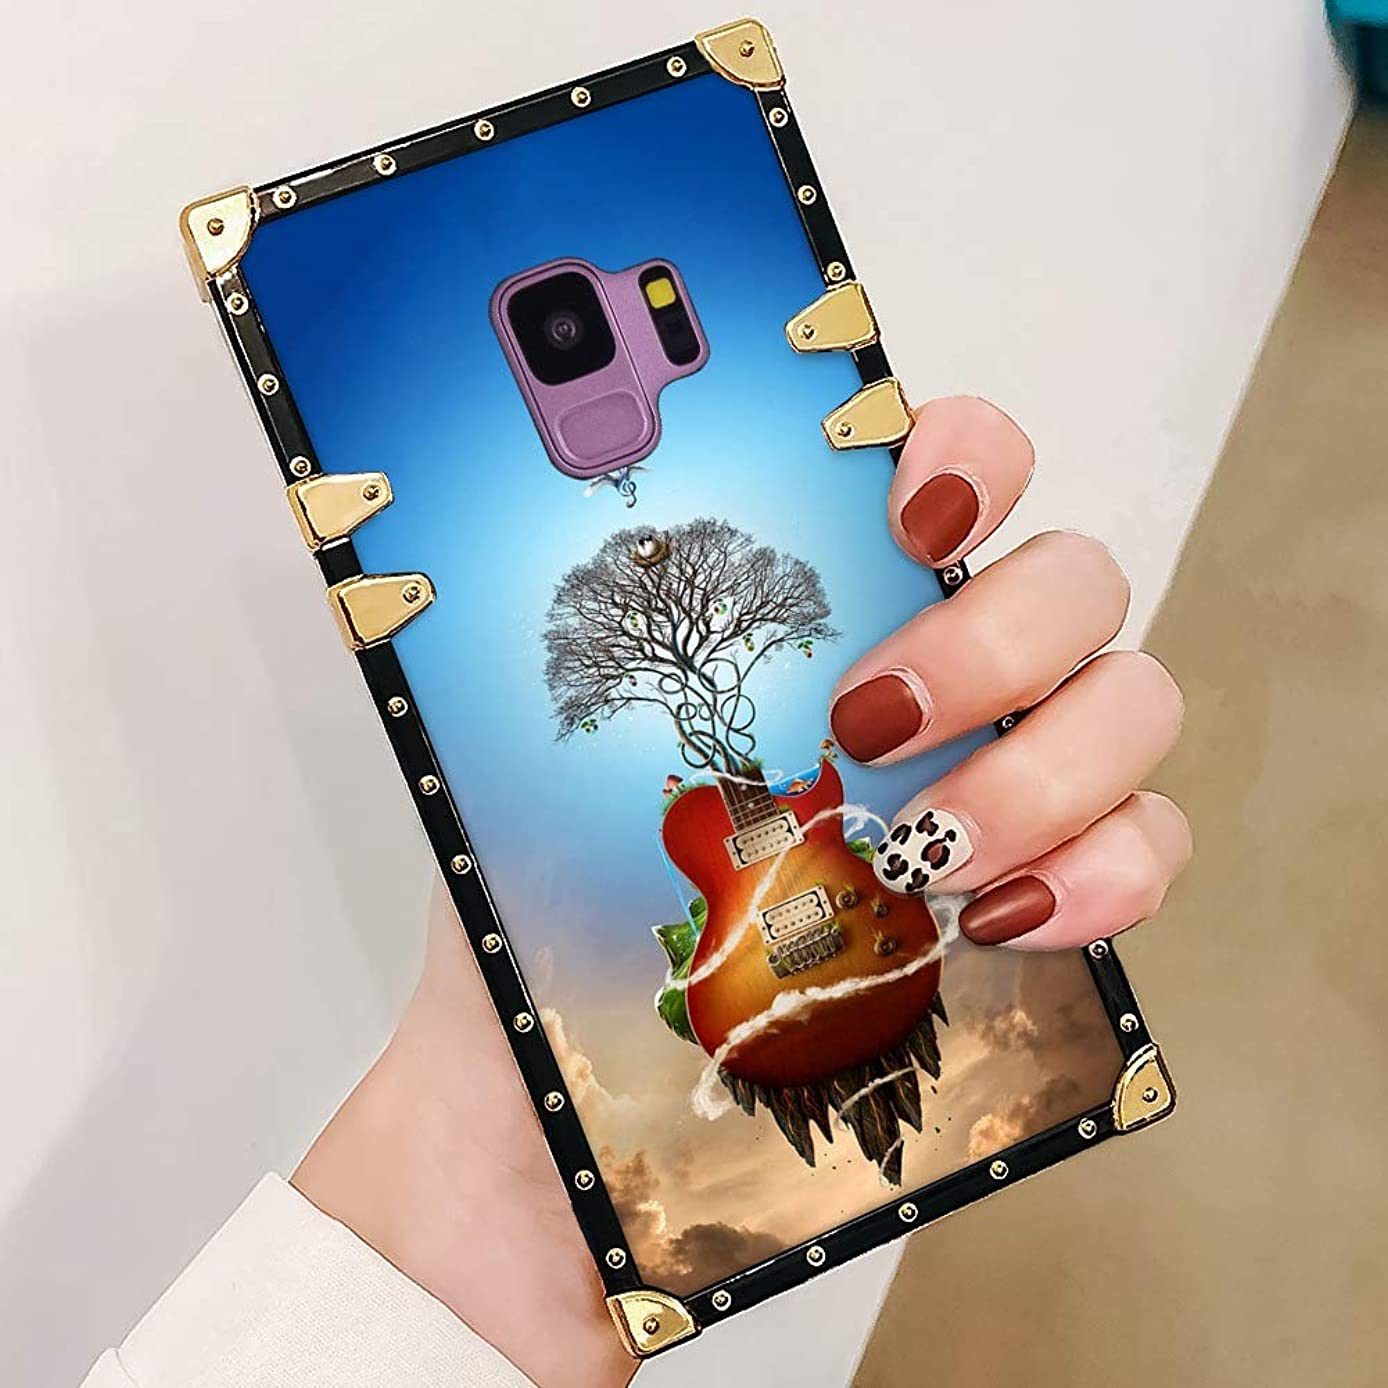 Phone Case for Samsung Galaxy S9 Square Edge Design Guitar Tree Luxury Phone Cover for Girl Women Shock Cushion Back Case